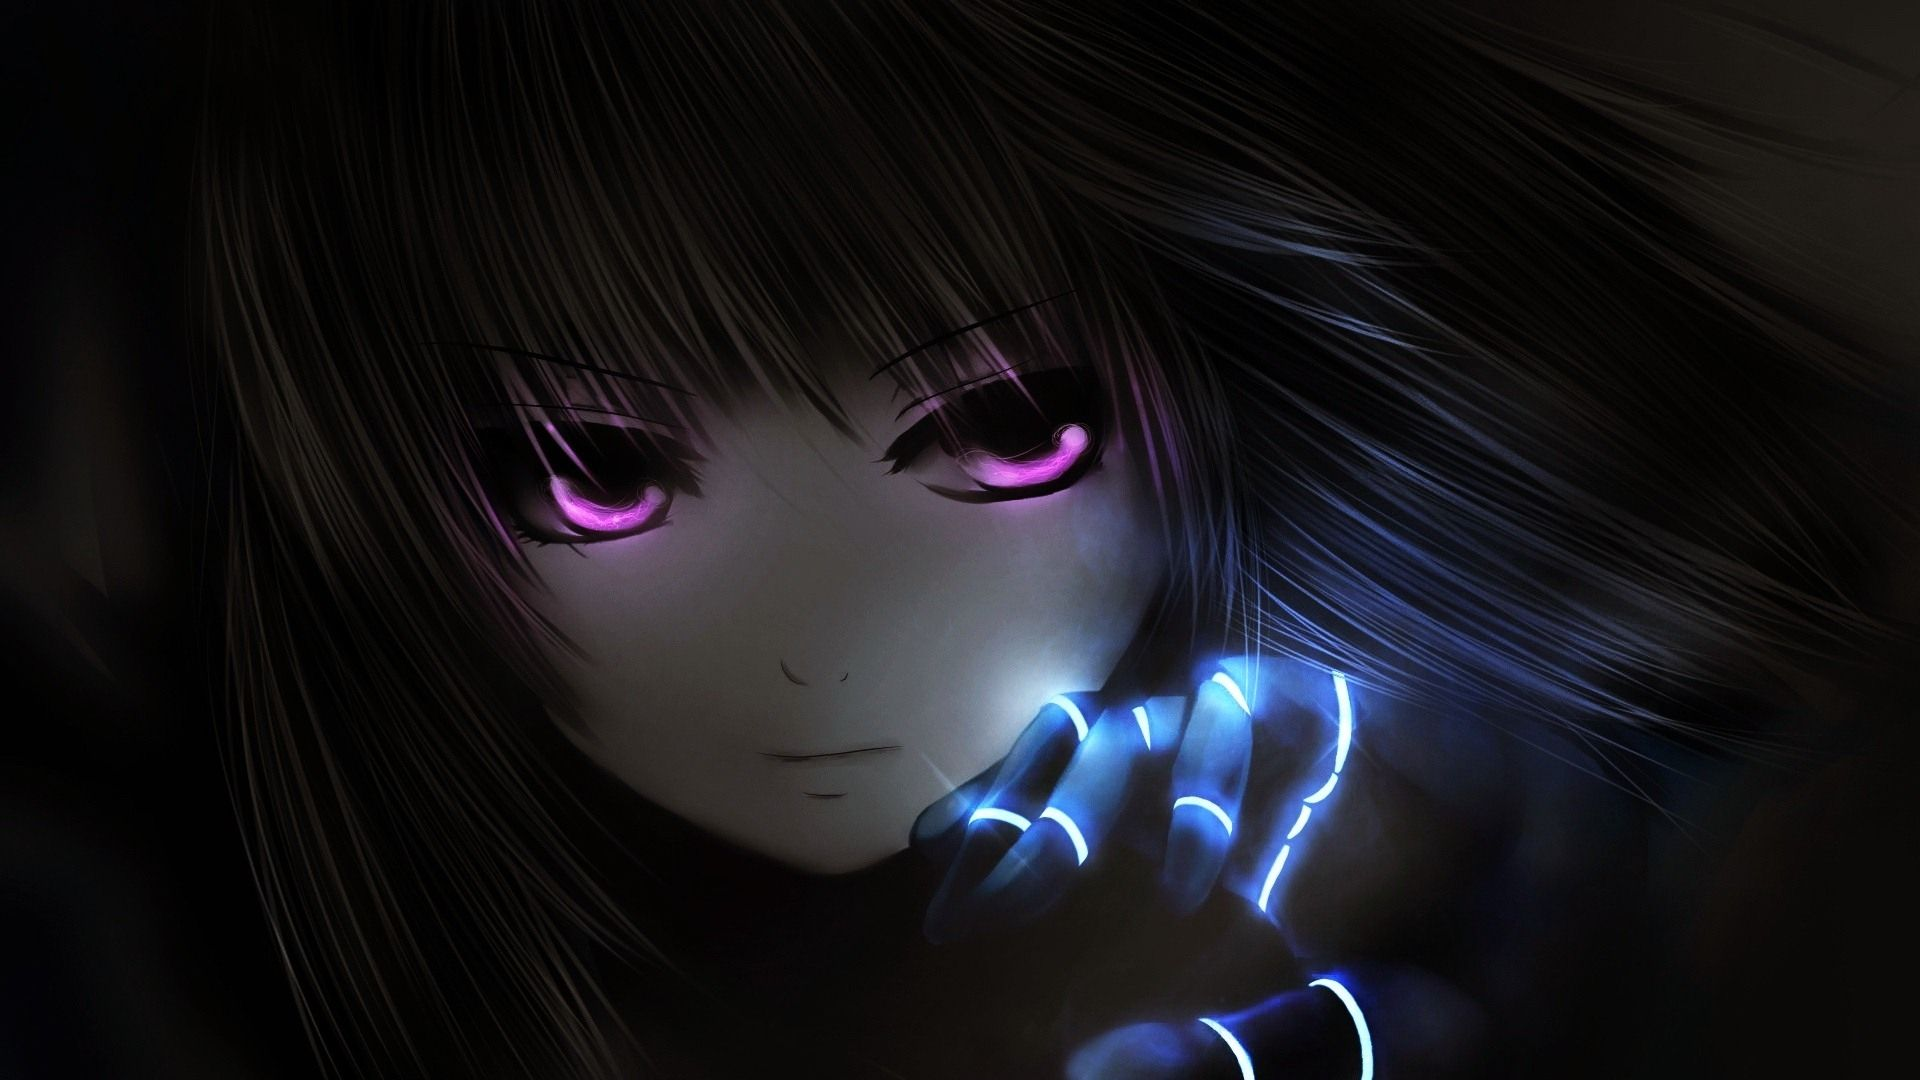 Black Anime Girl Wallpapers Top Free Black Anime Girl Backgrounds